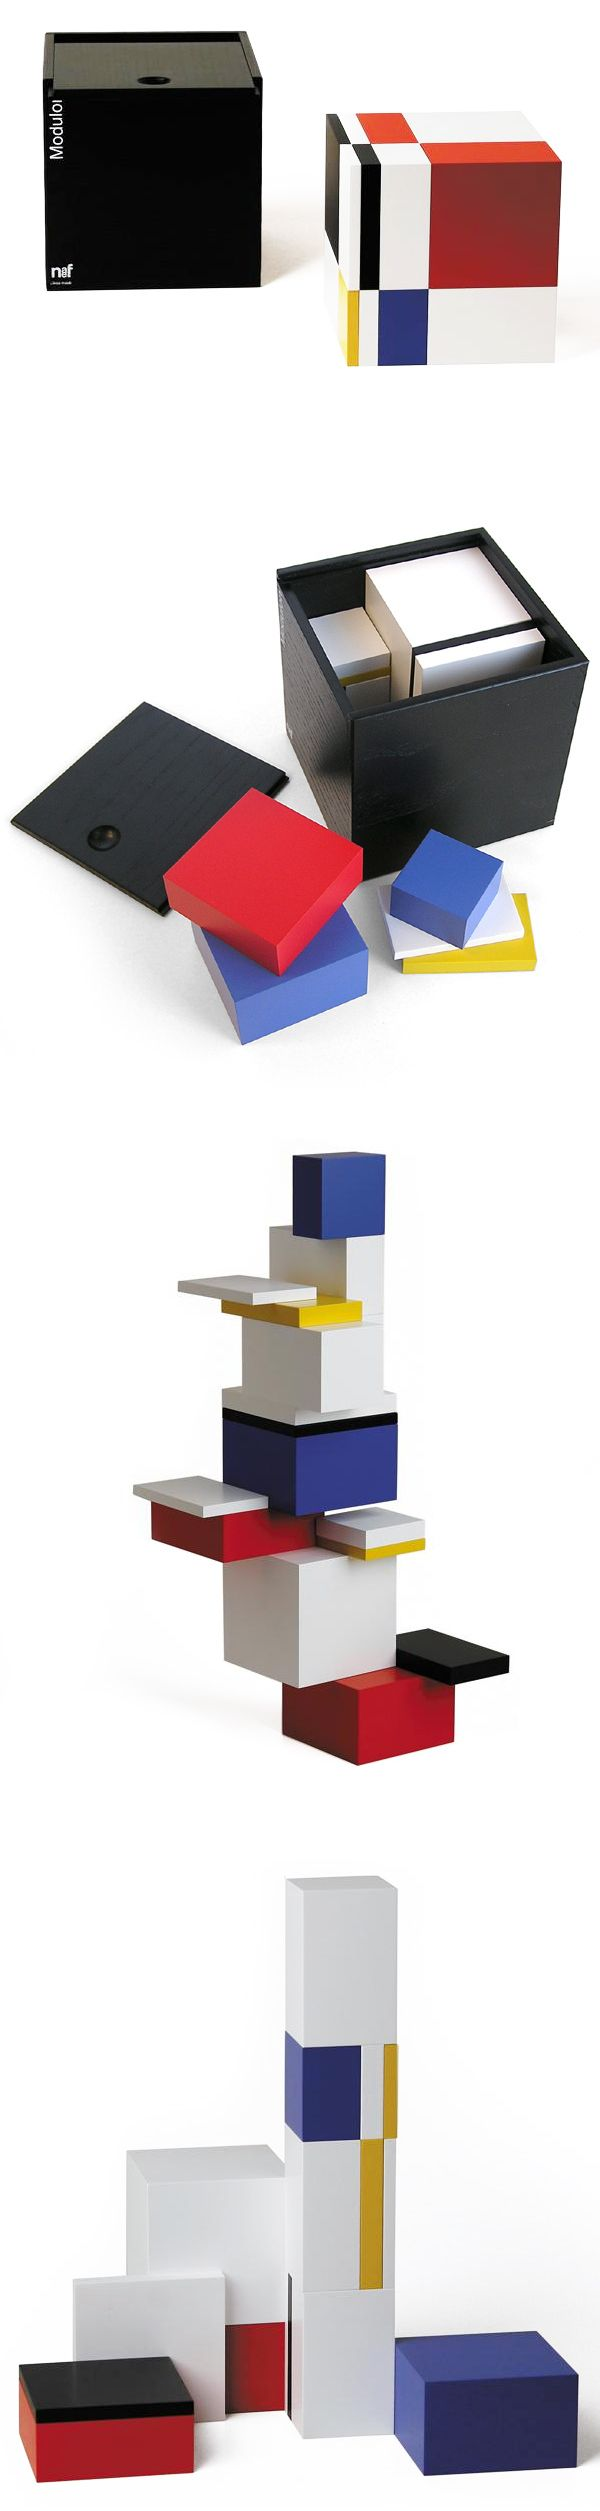 Naef Modulon Minimal Wooden Art Architecture Puzzle Toy